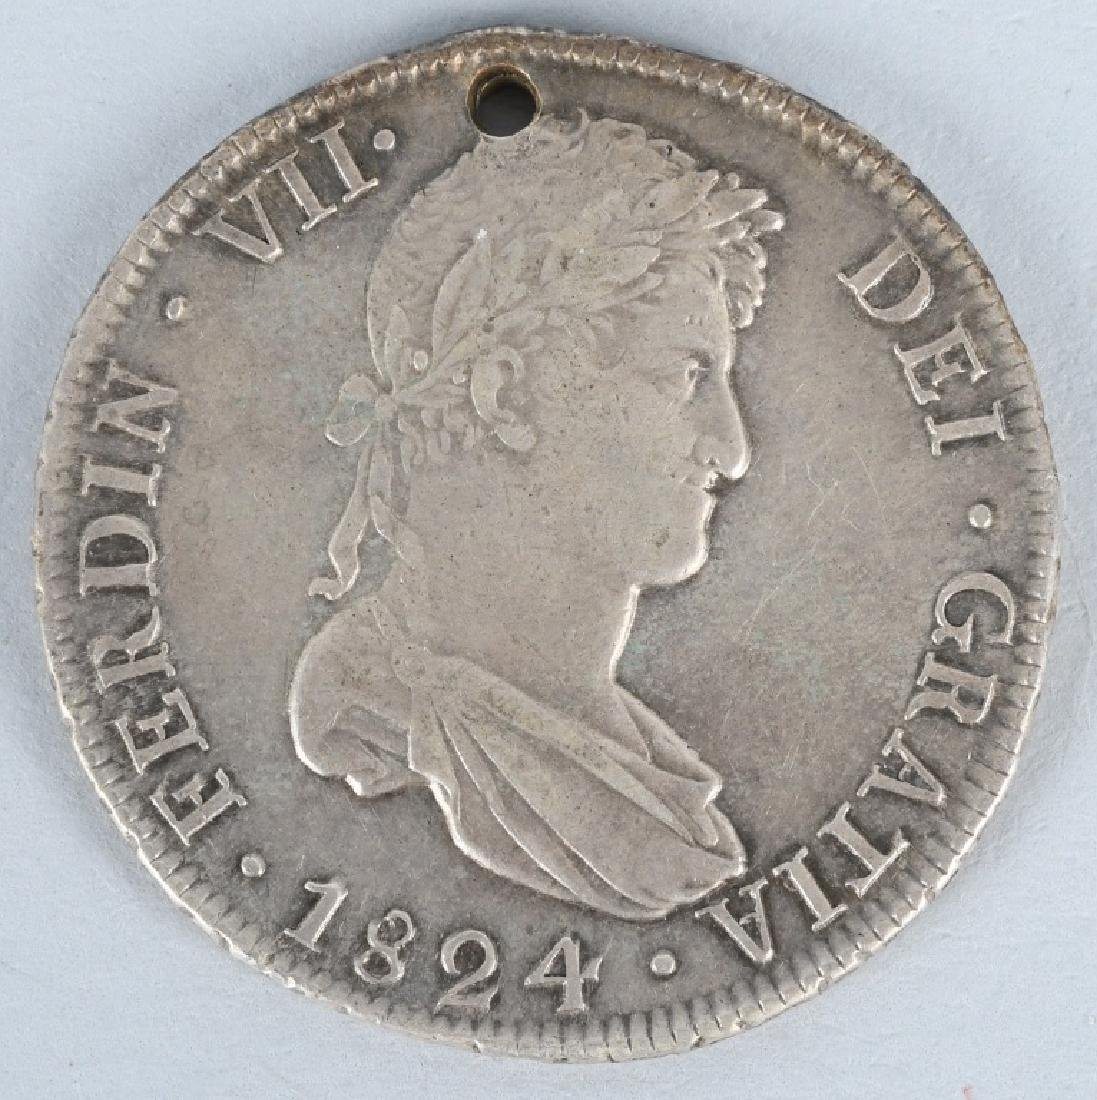 1824 SILVER 8 REALES COIN